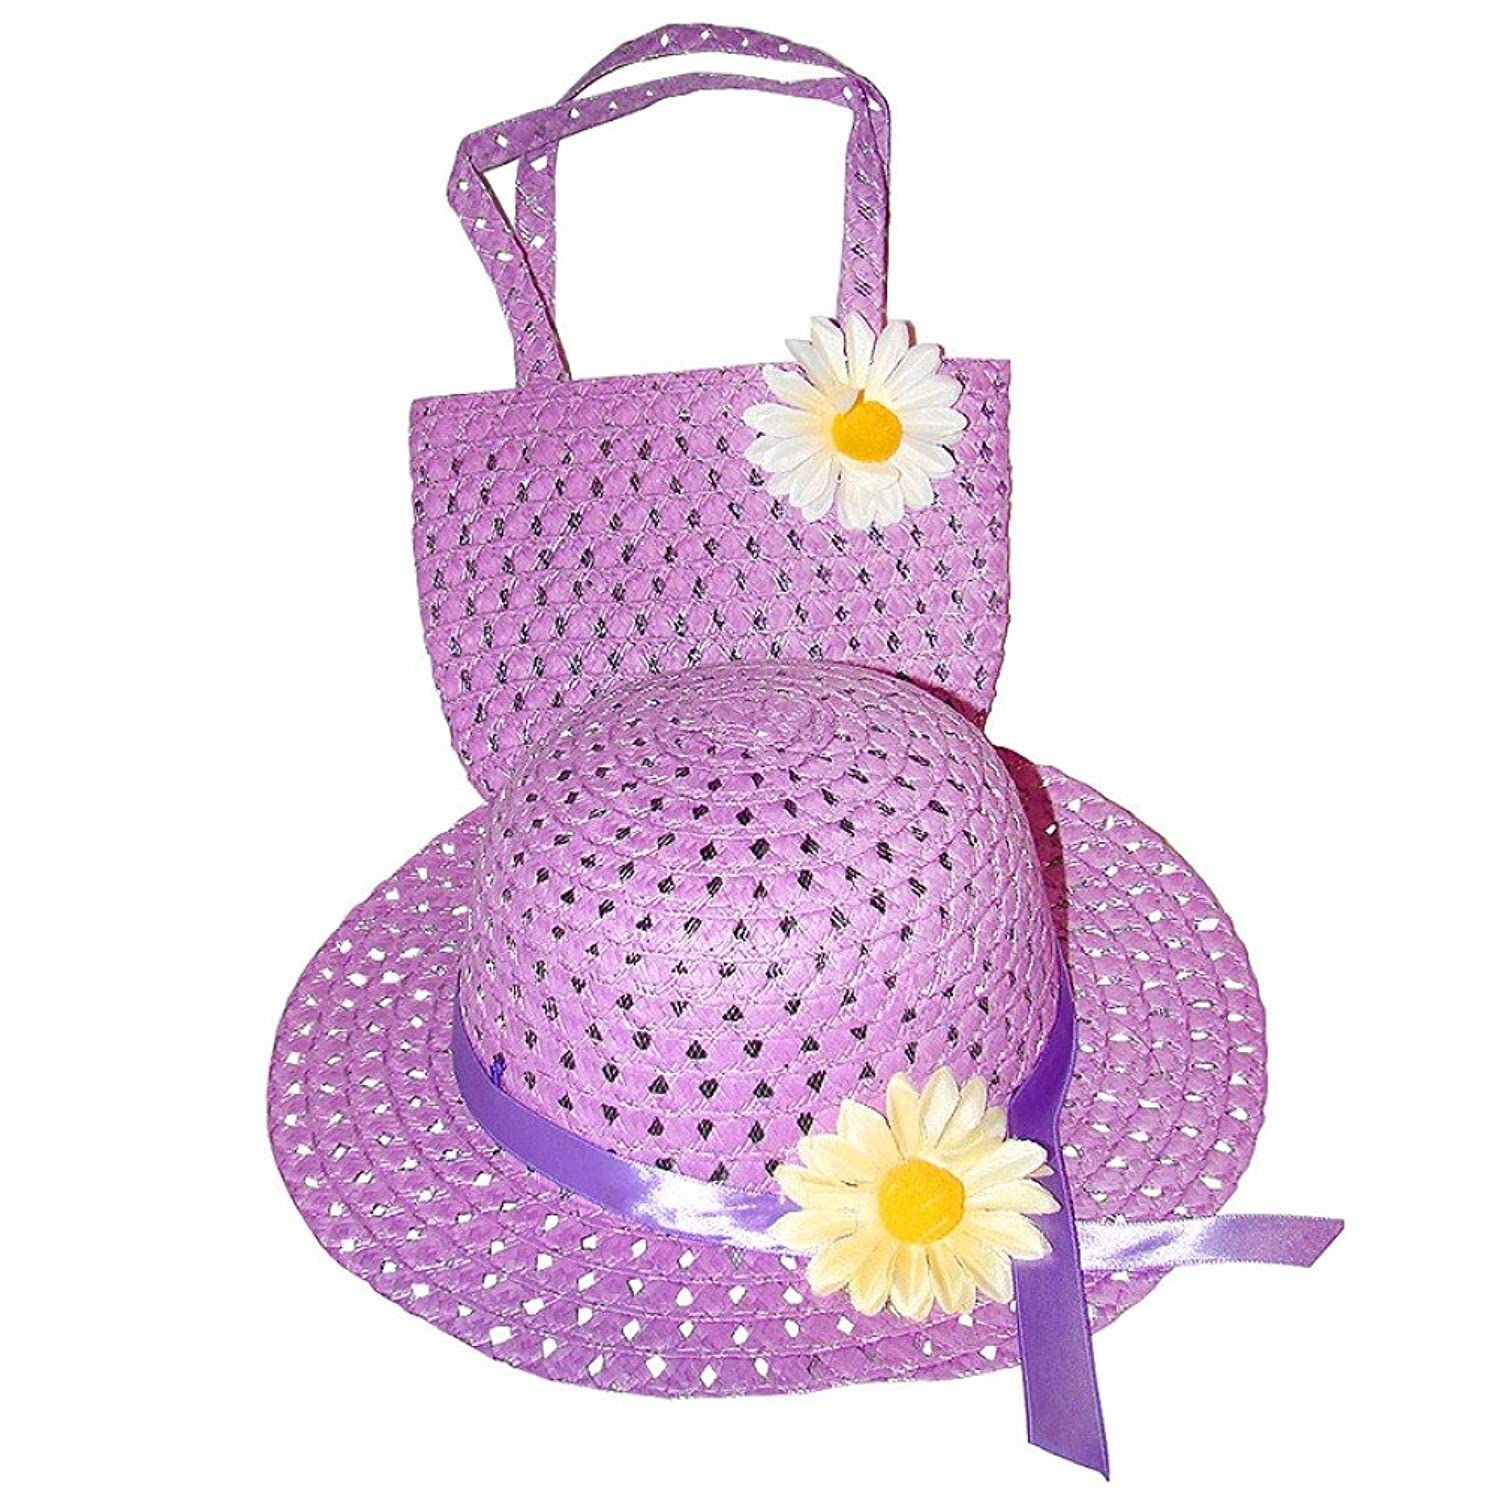 daisy dress up tea party girls easter straw hat purse set kid 39 s cute gift. Black Bedroom Furniture Sets. Home Design Ideas